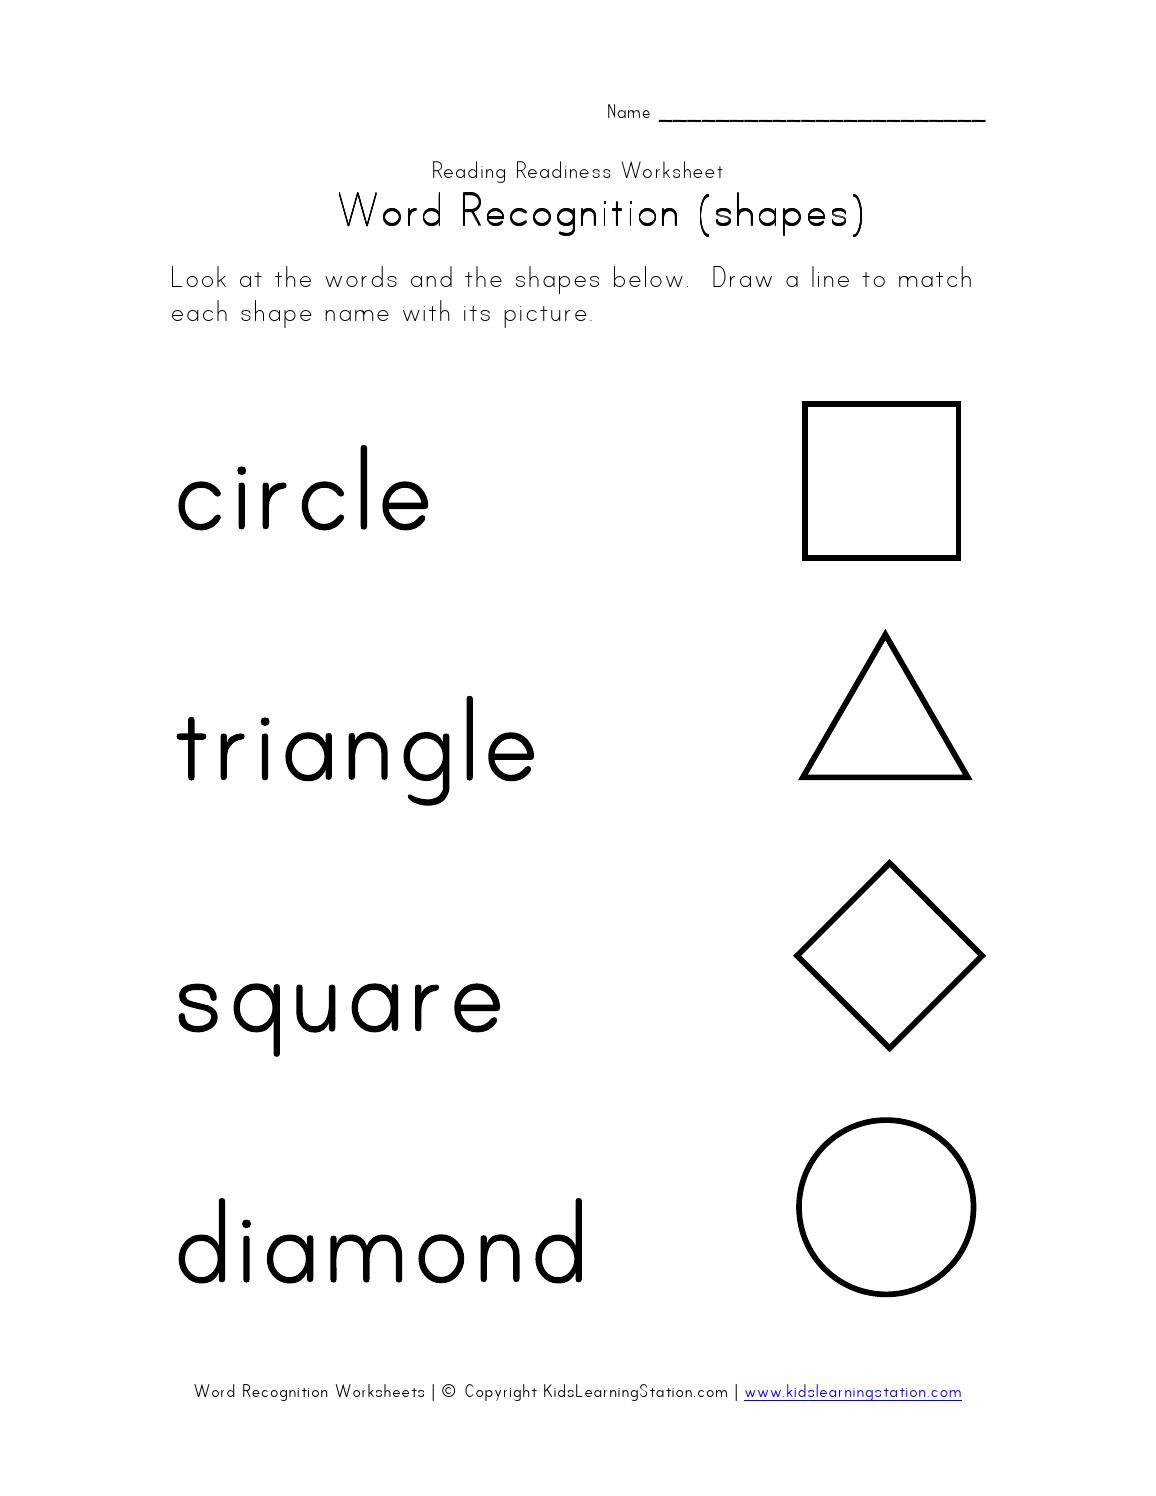 Reading Readiness Worksheets